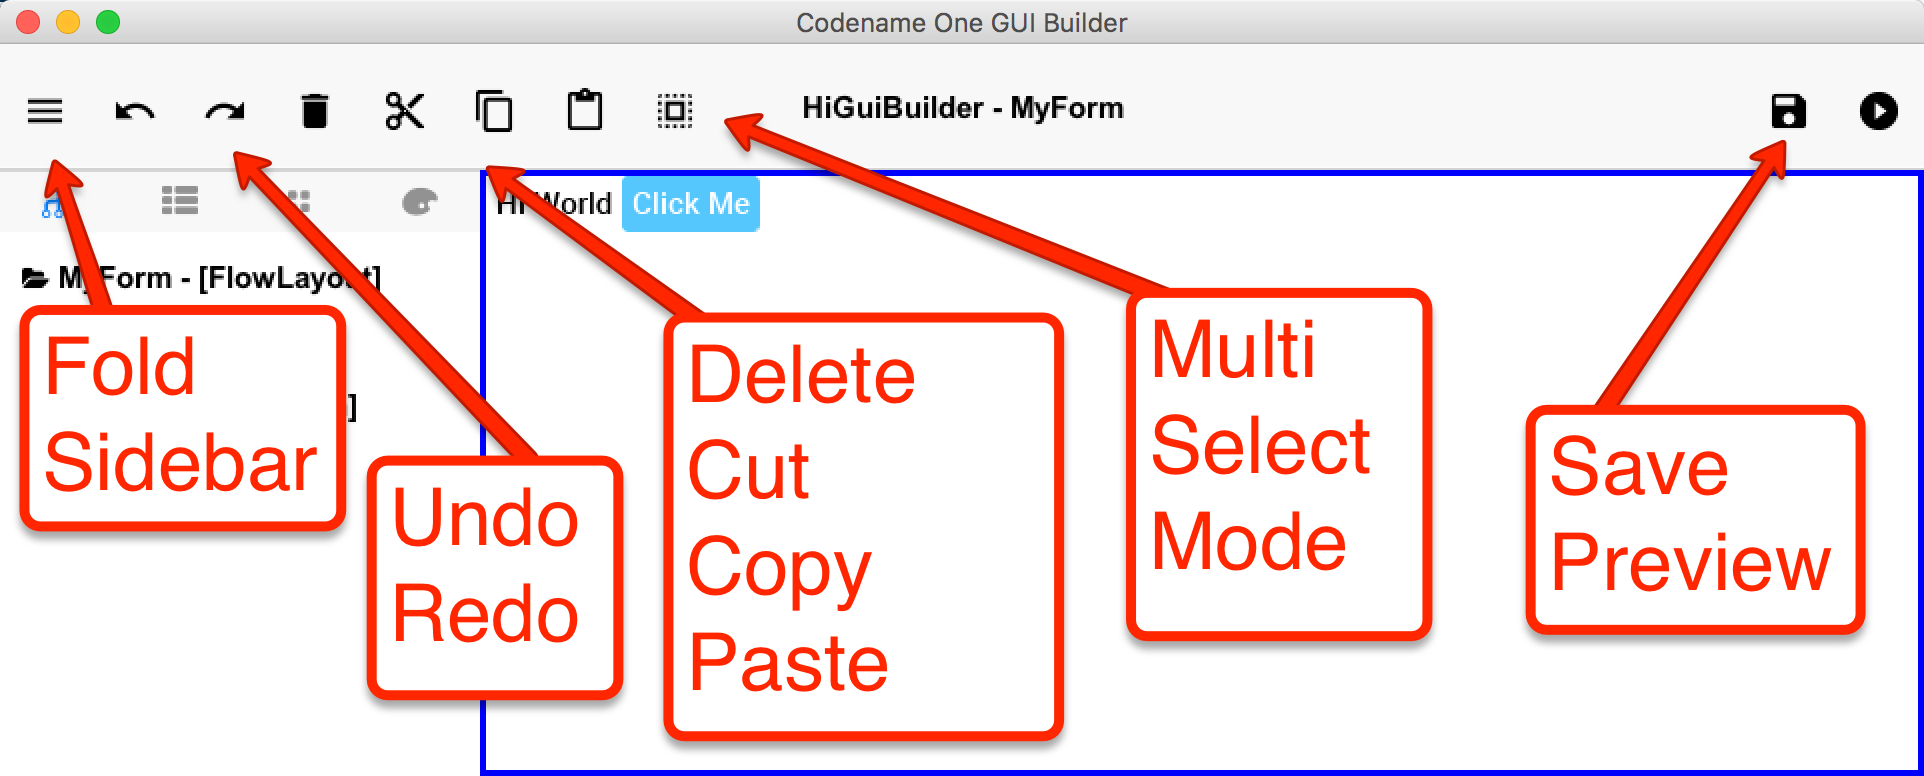 Using the new GUI Builder - Codename One